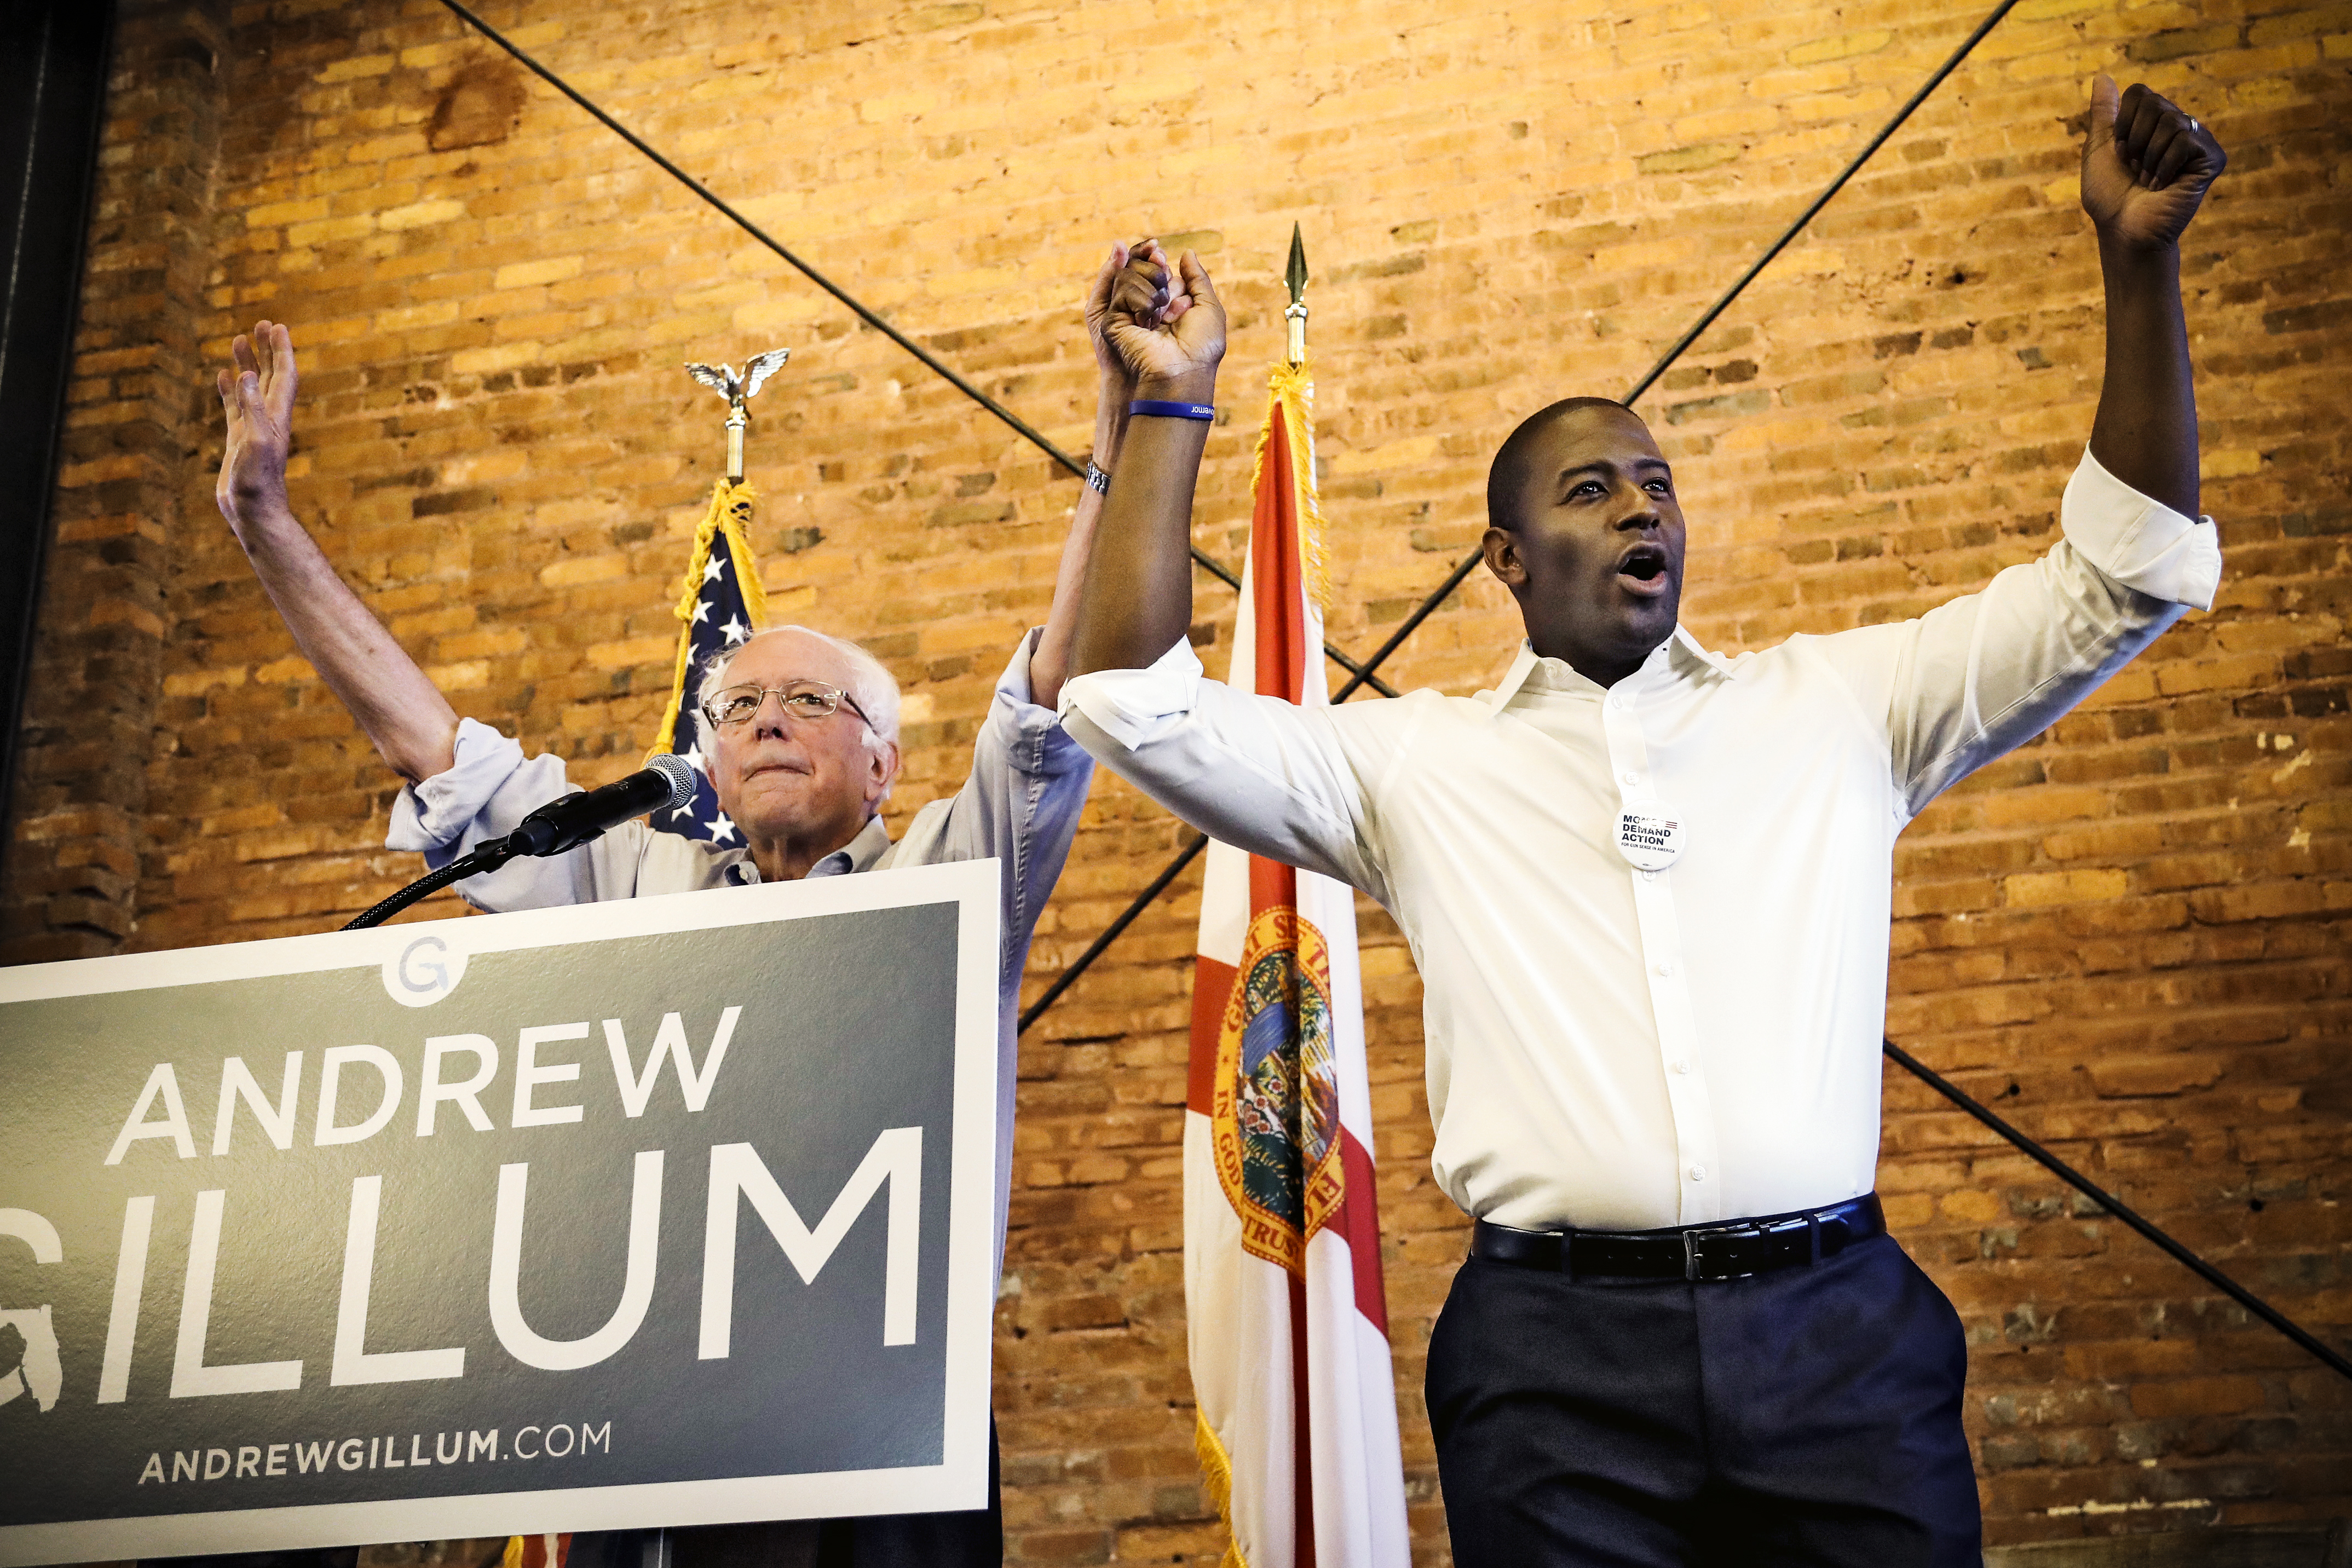 Andrew Gillum wins Florida governor primary in upset victory for the left